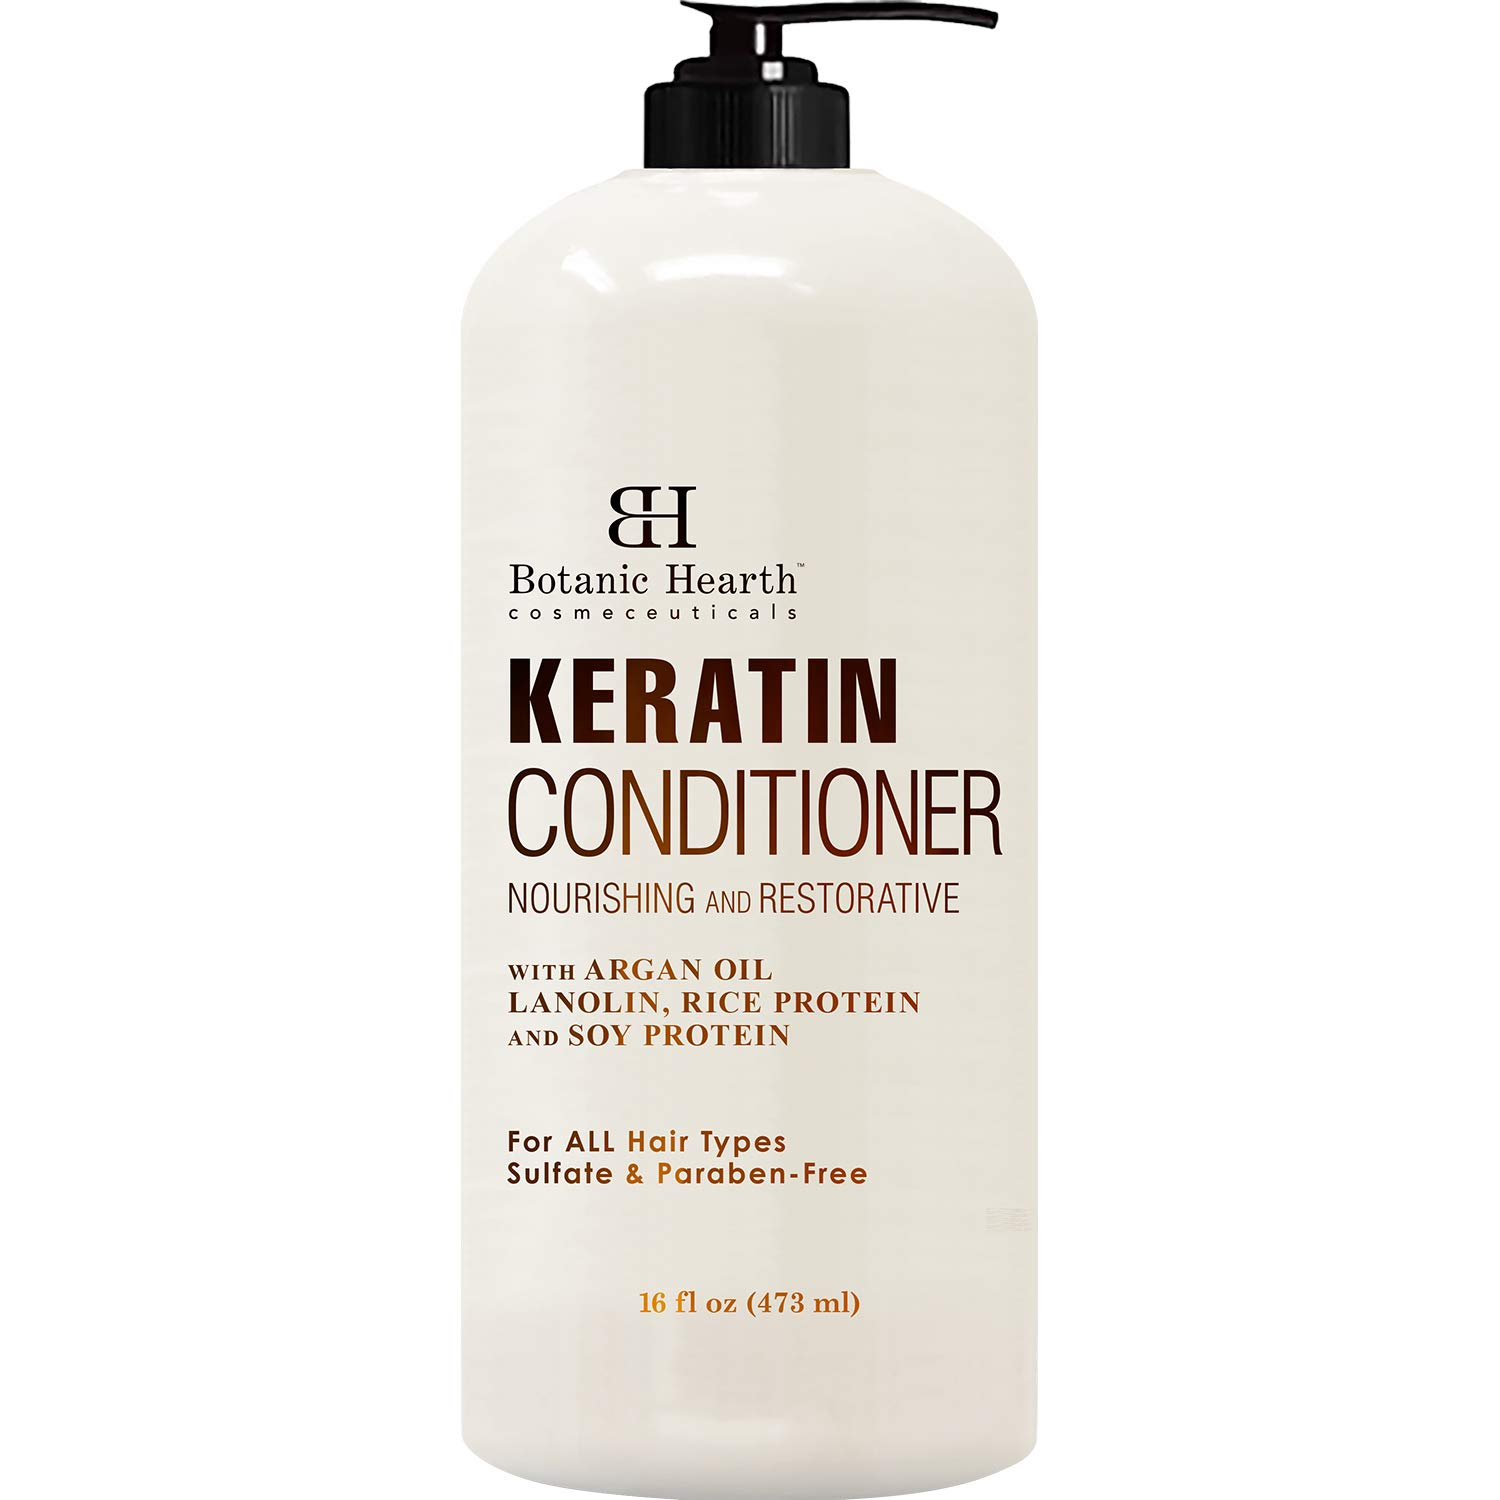 Keratin Conditioner with Argan Oil by Botanic Hearth - Natural Sulfate Free Keratin Hair Treatment for Normal, Dry or Damaged Hair - All Hair Types, Women and Men, Color Treated Hair - 16 fl oz